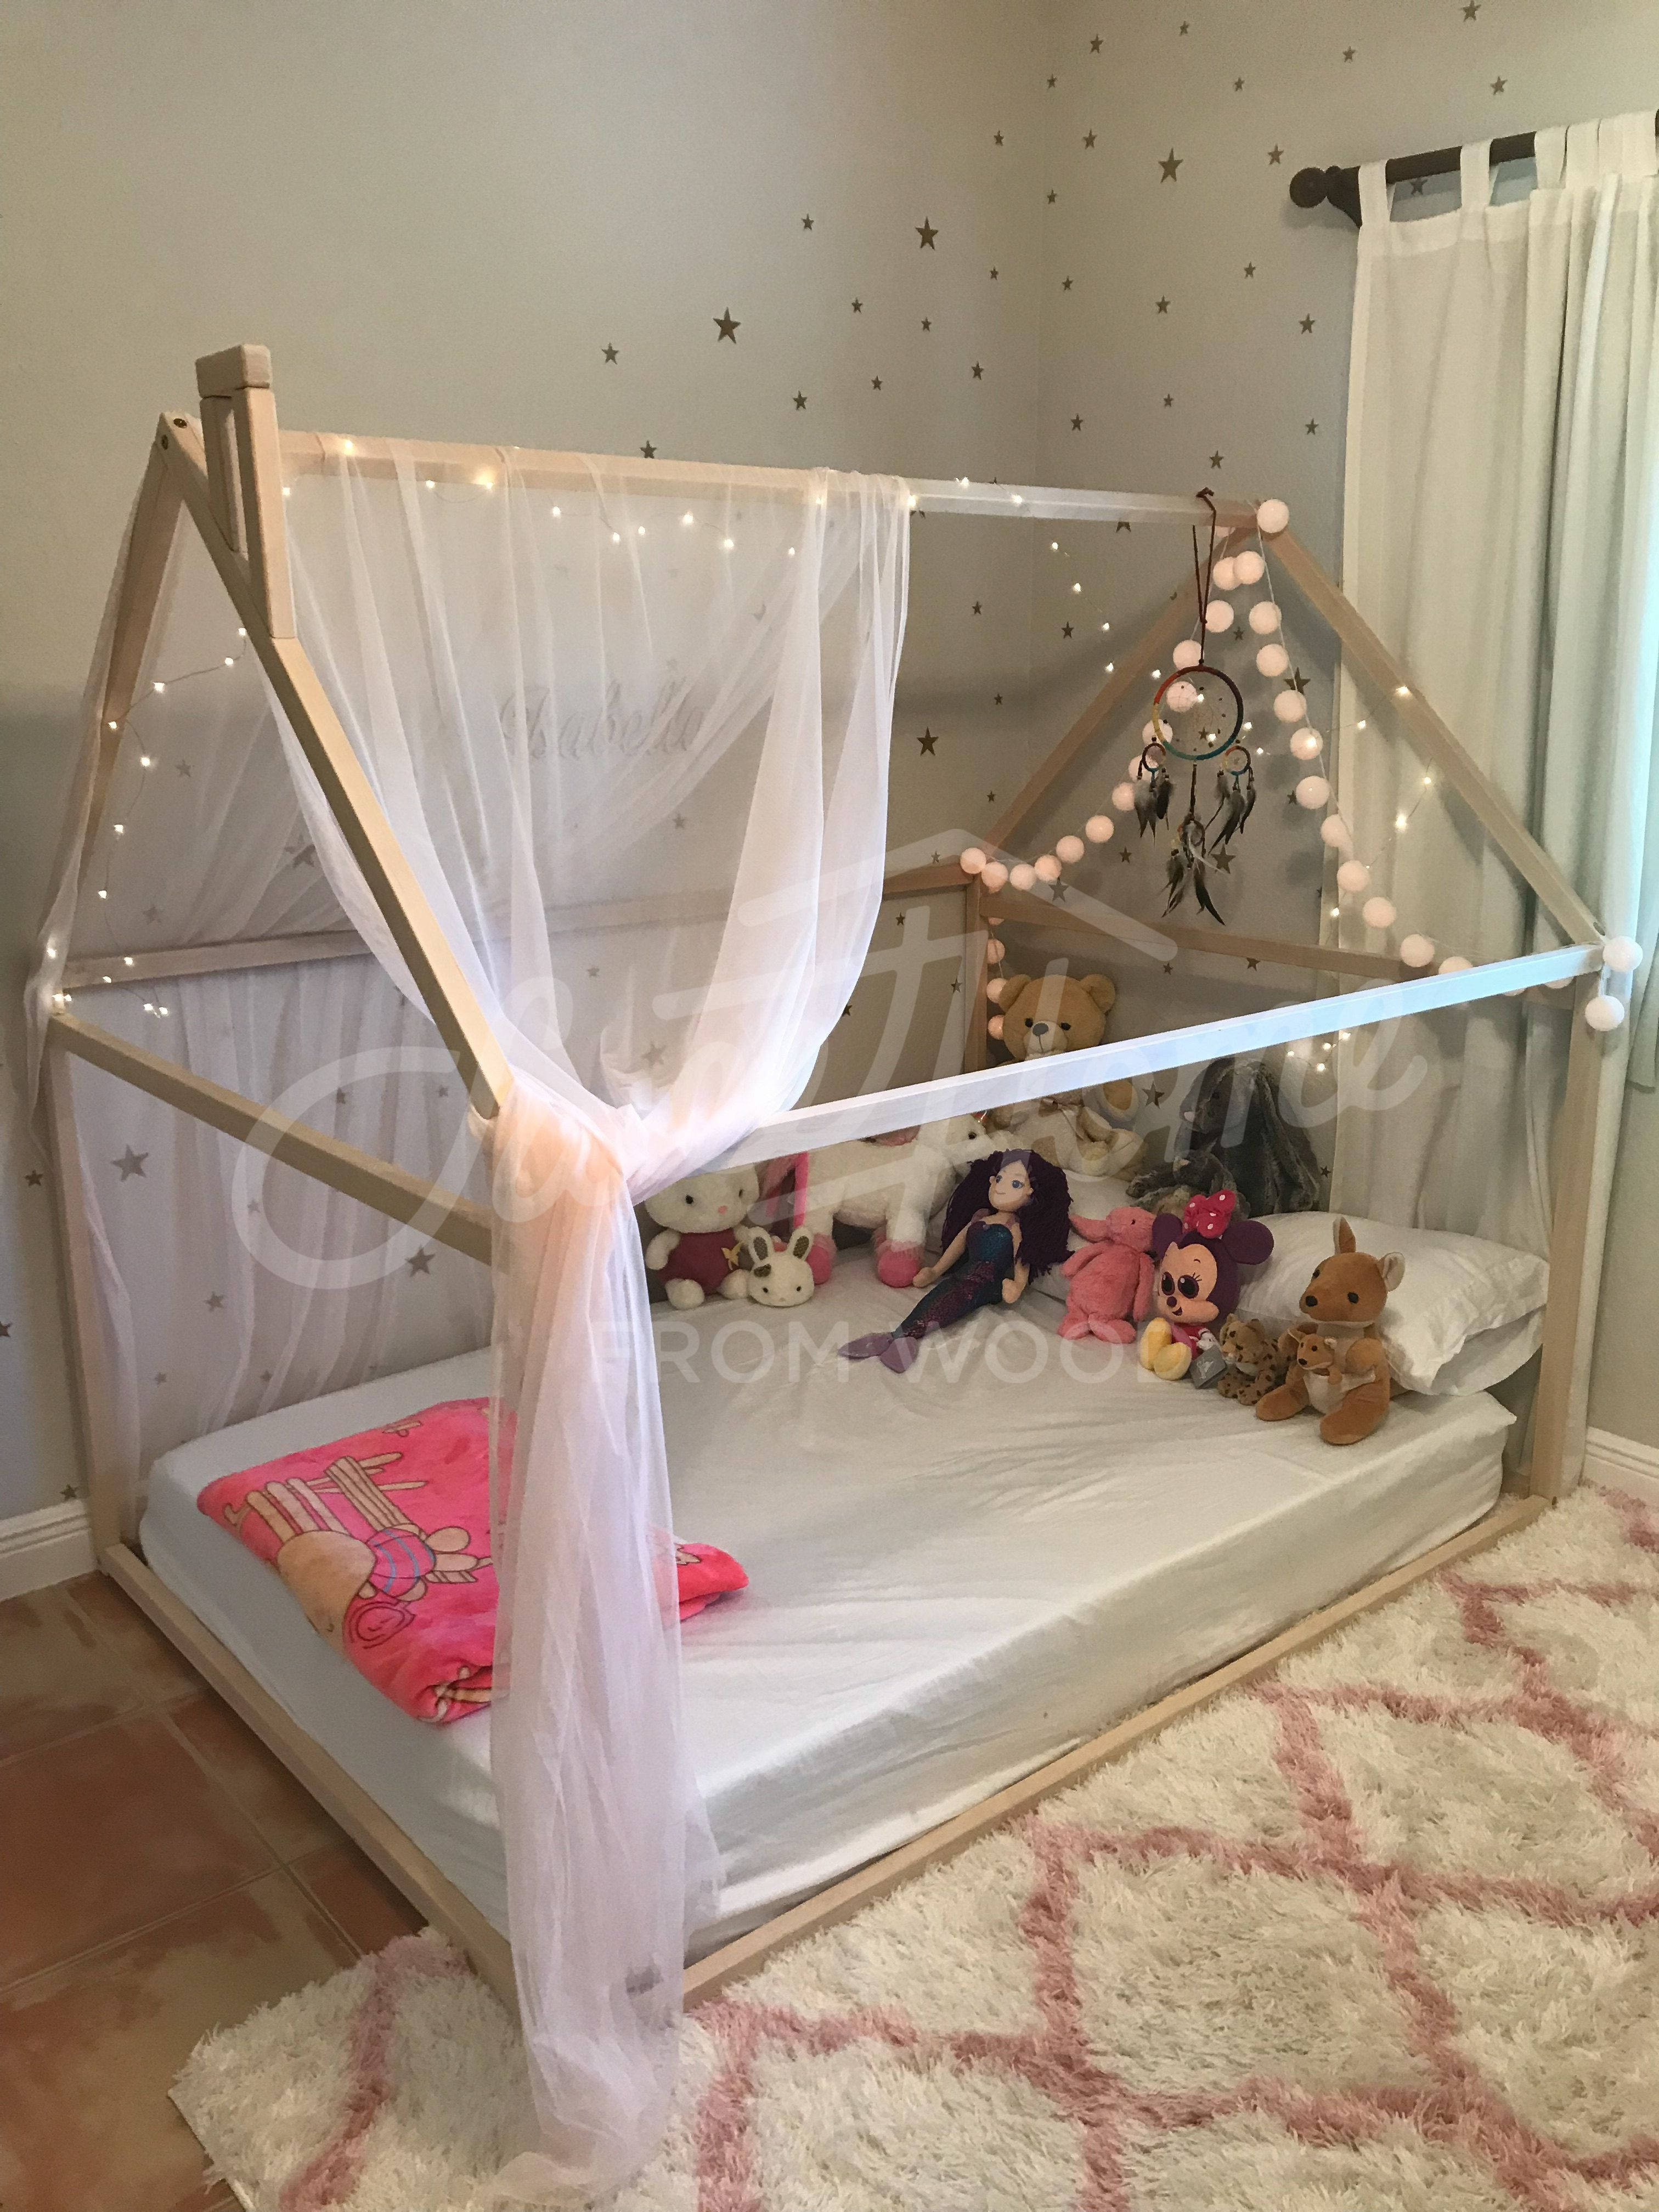 Wooden House Bed Frame Platform Bed Teepee Bed Wood Bed Frame